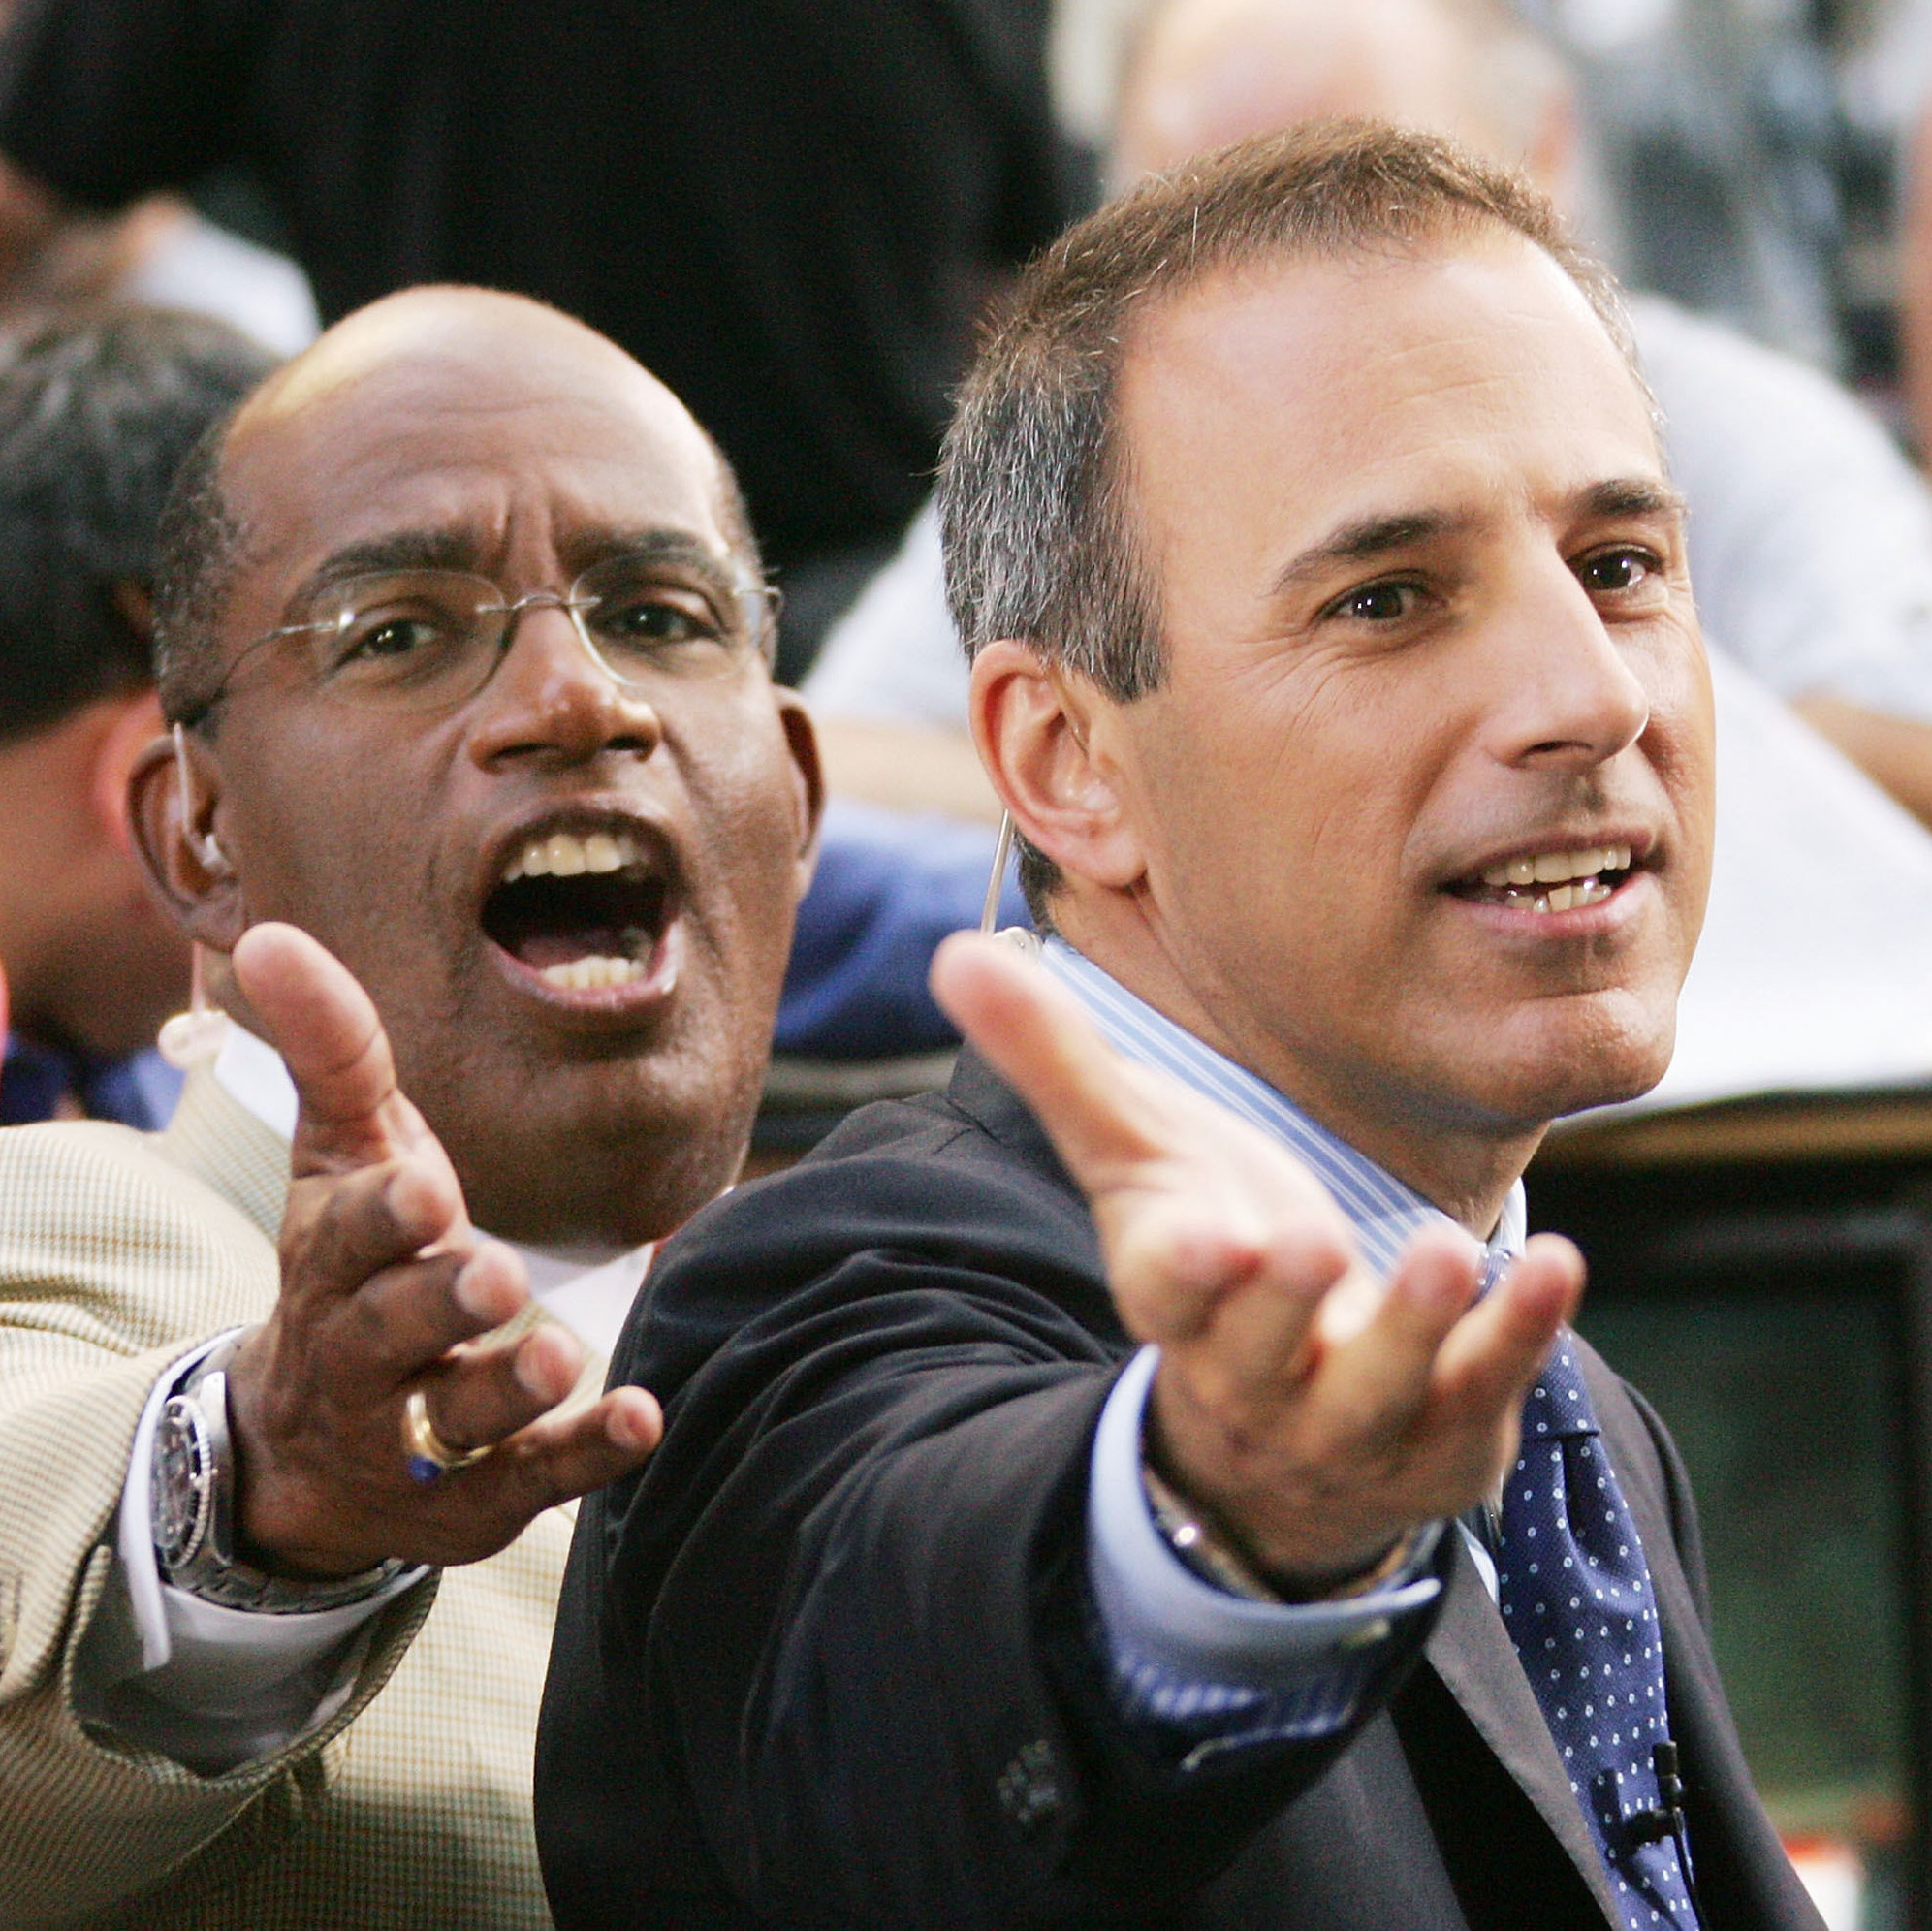 Today Show hosts Al Roker and Matt Lauer in 2005.